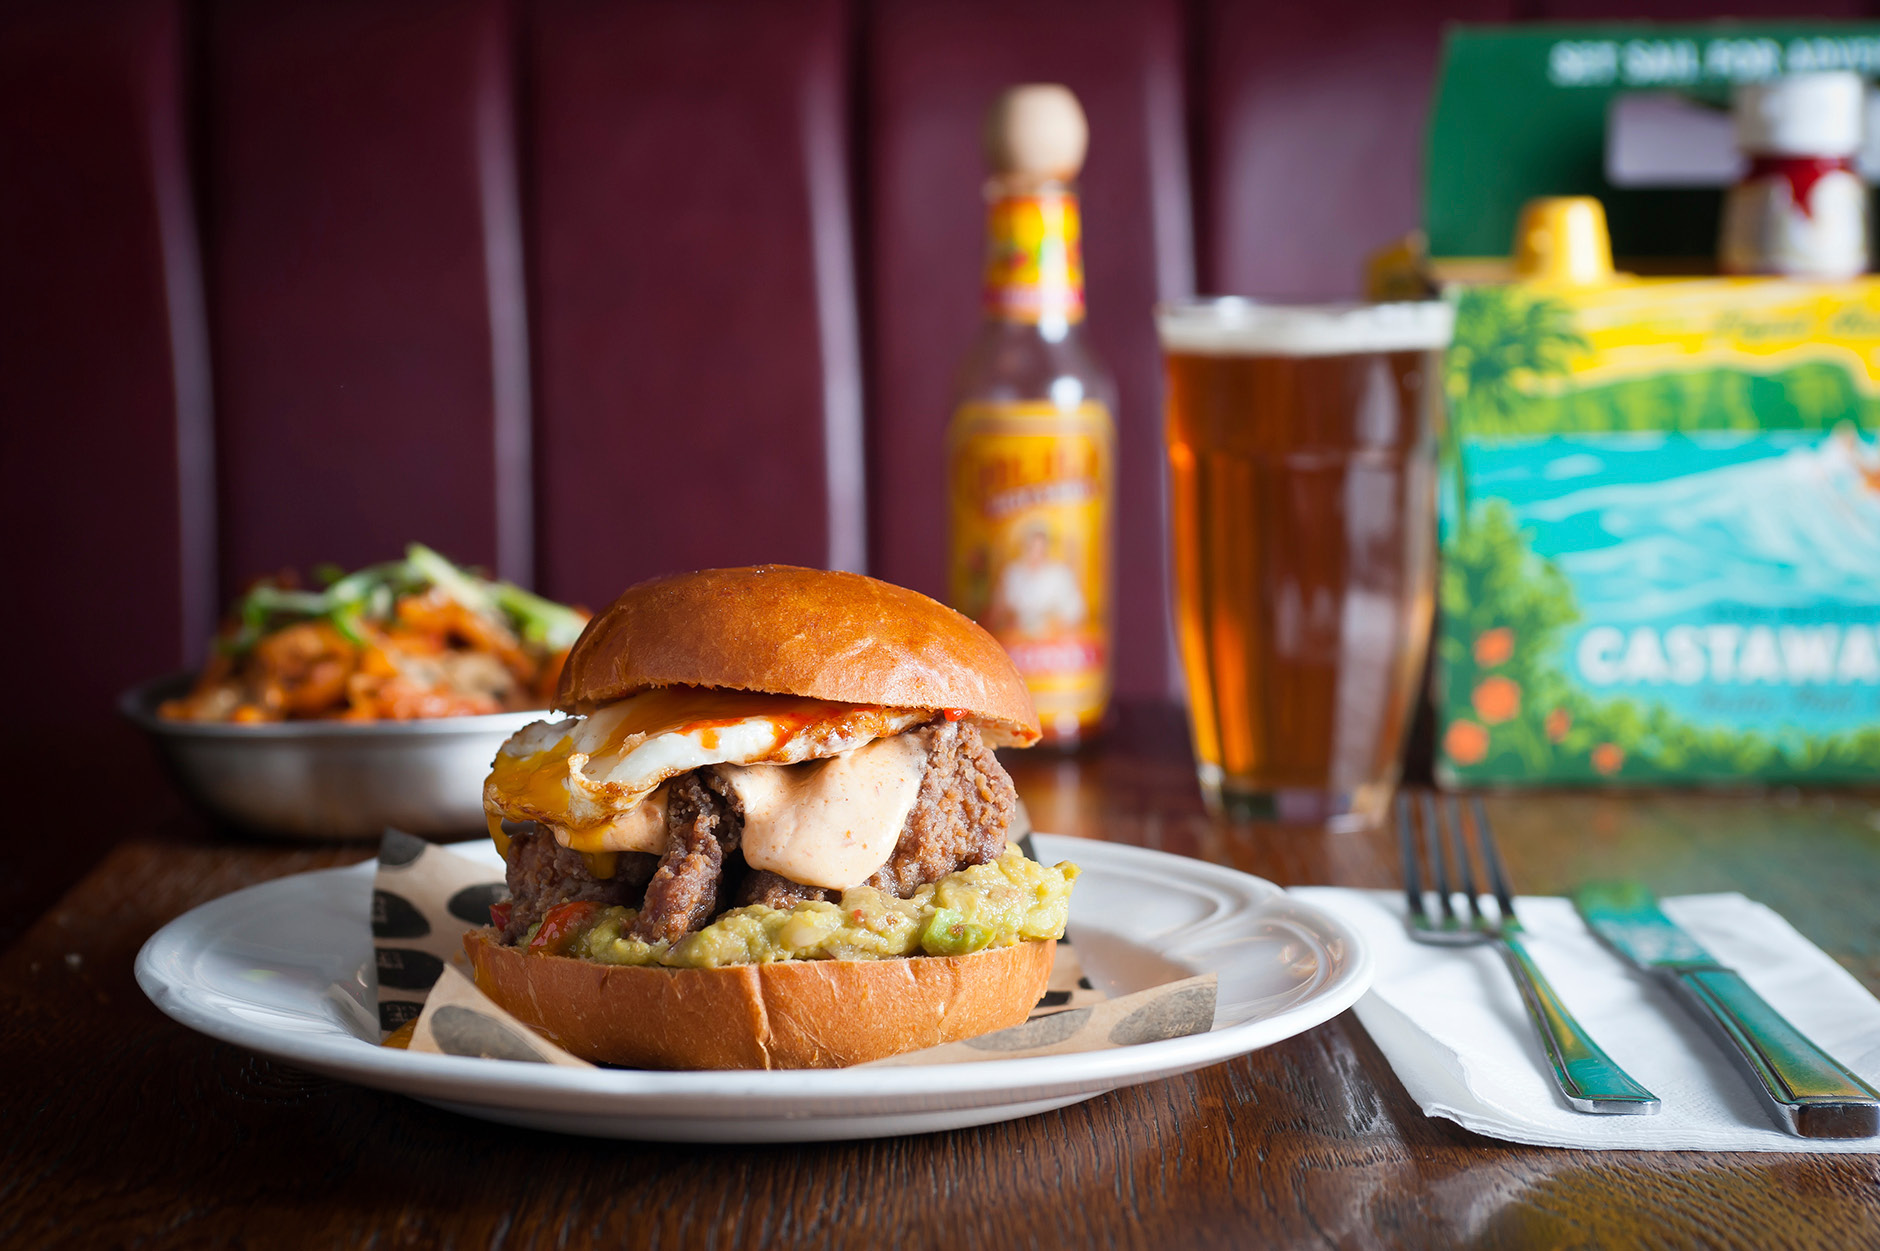 Bad_Egg_Moorgate_food_frunch_fried_chicken_burger_1